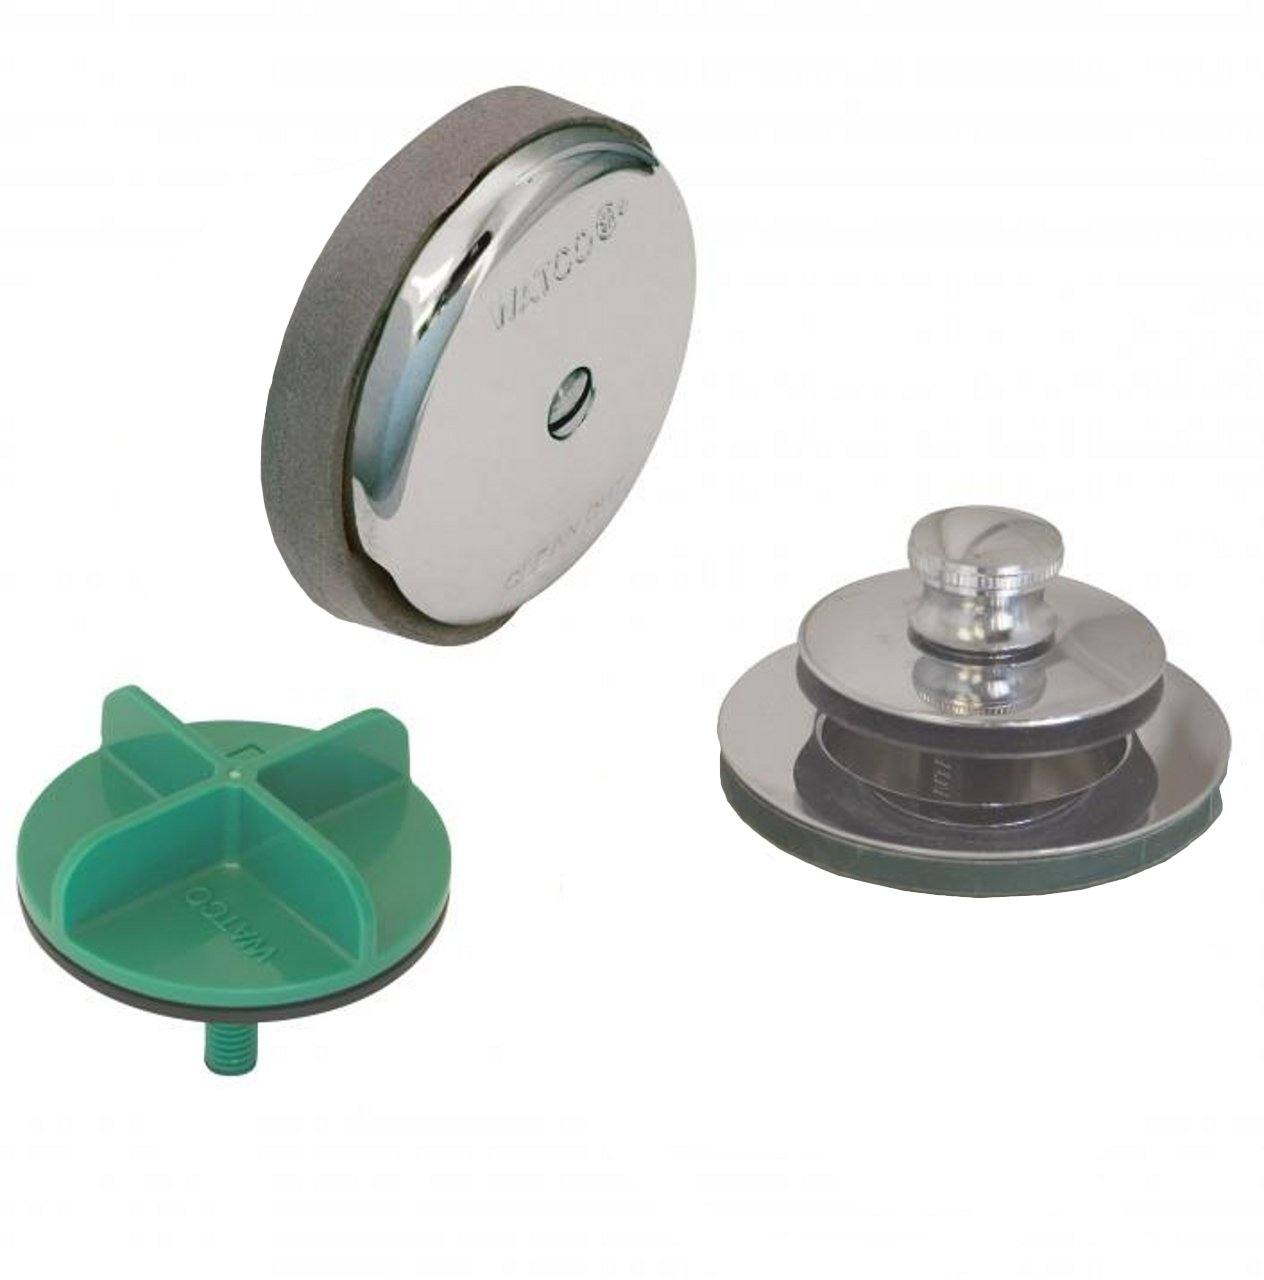 Watco Manufacturing 901-LT-ABS-AP 1.5-Inch Schedule 40 ABS Piping Innovator Lift and Turn Bath Waste Half Kit, Aged Pewter